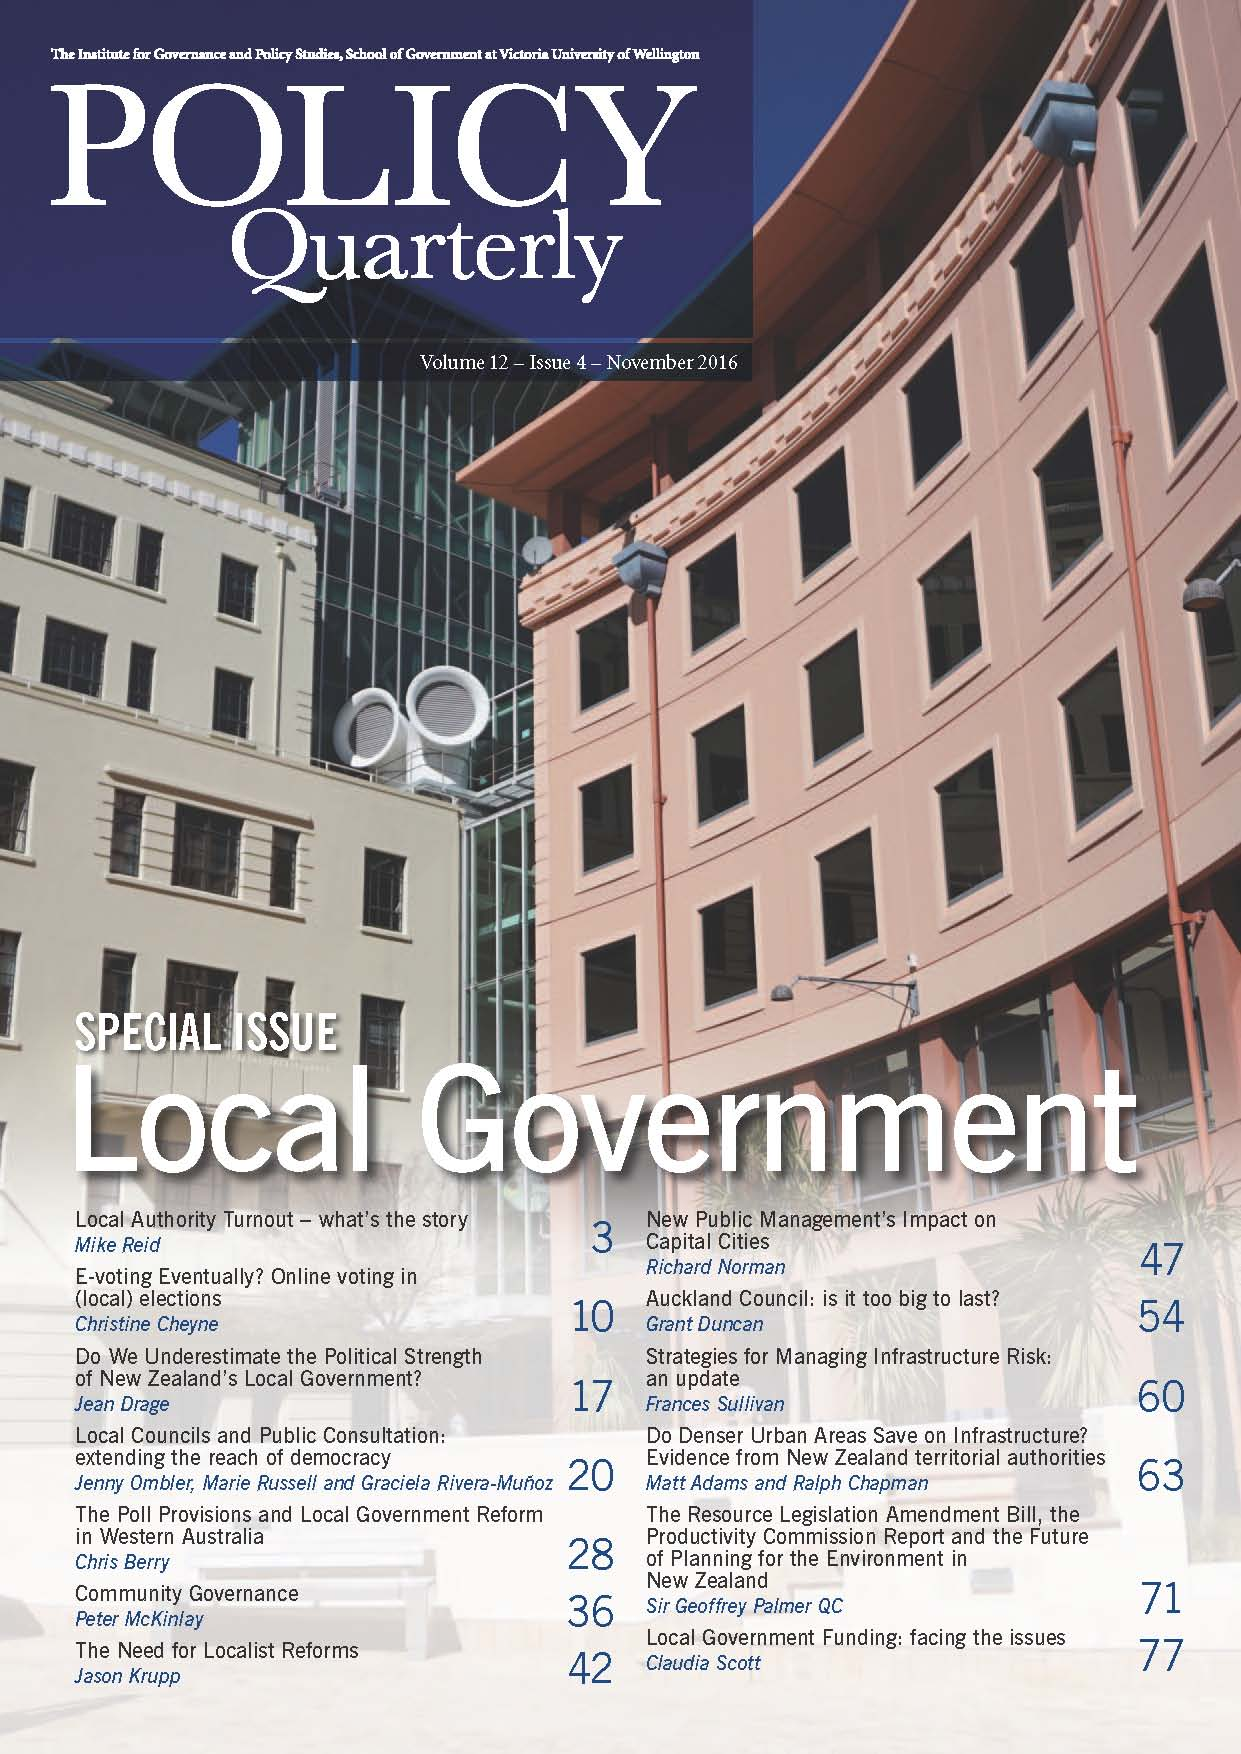 Policy Quarterly volume 12 issue 4 2016